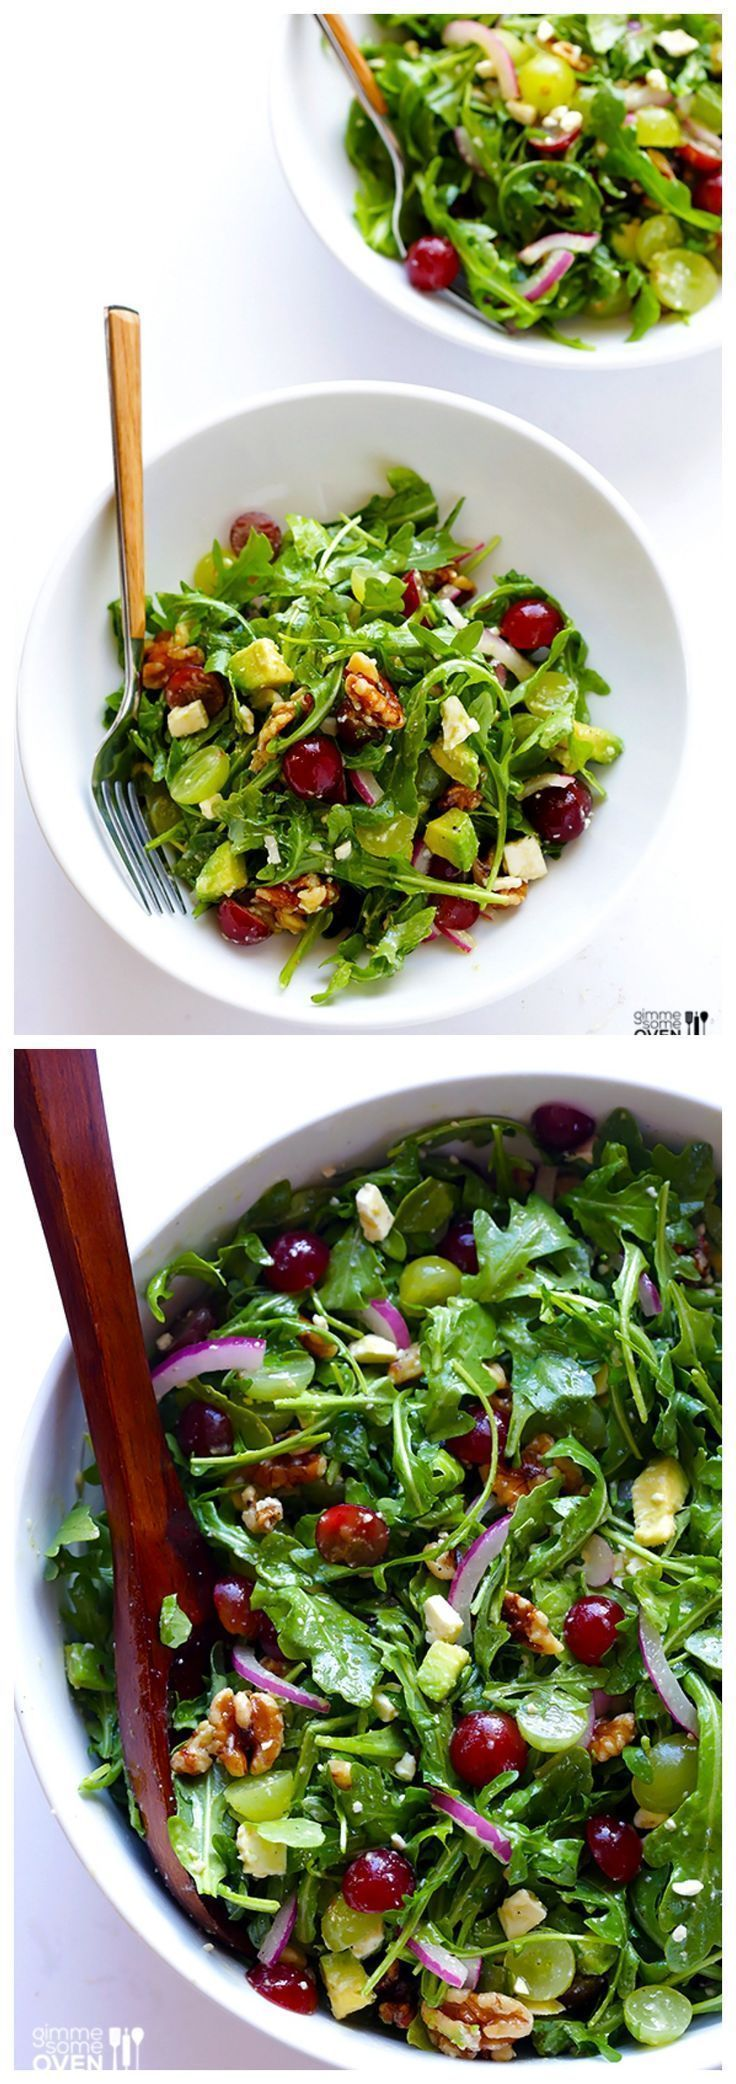 Leafy salad recipes healthy